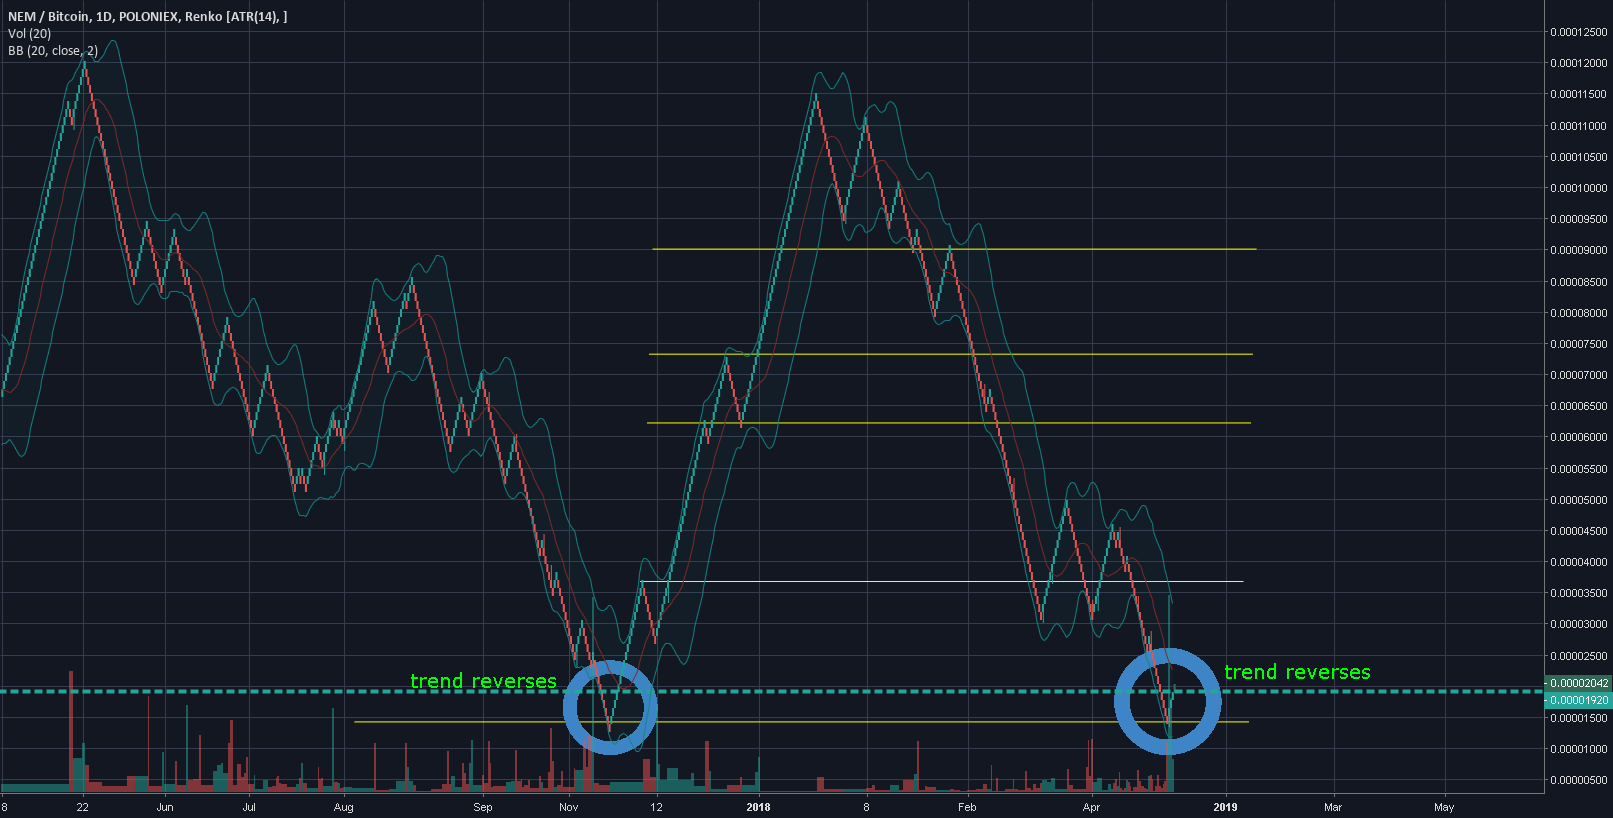 1abcd0d96ec can find lots of these types of coins on binance if you can identify  breakout trend